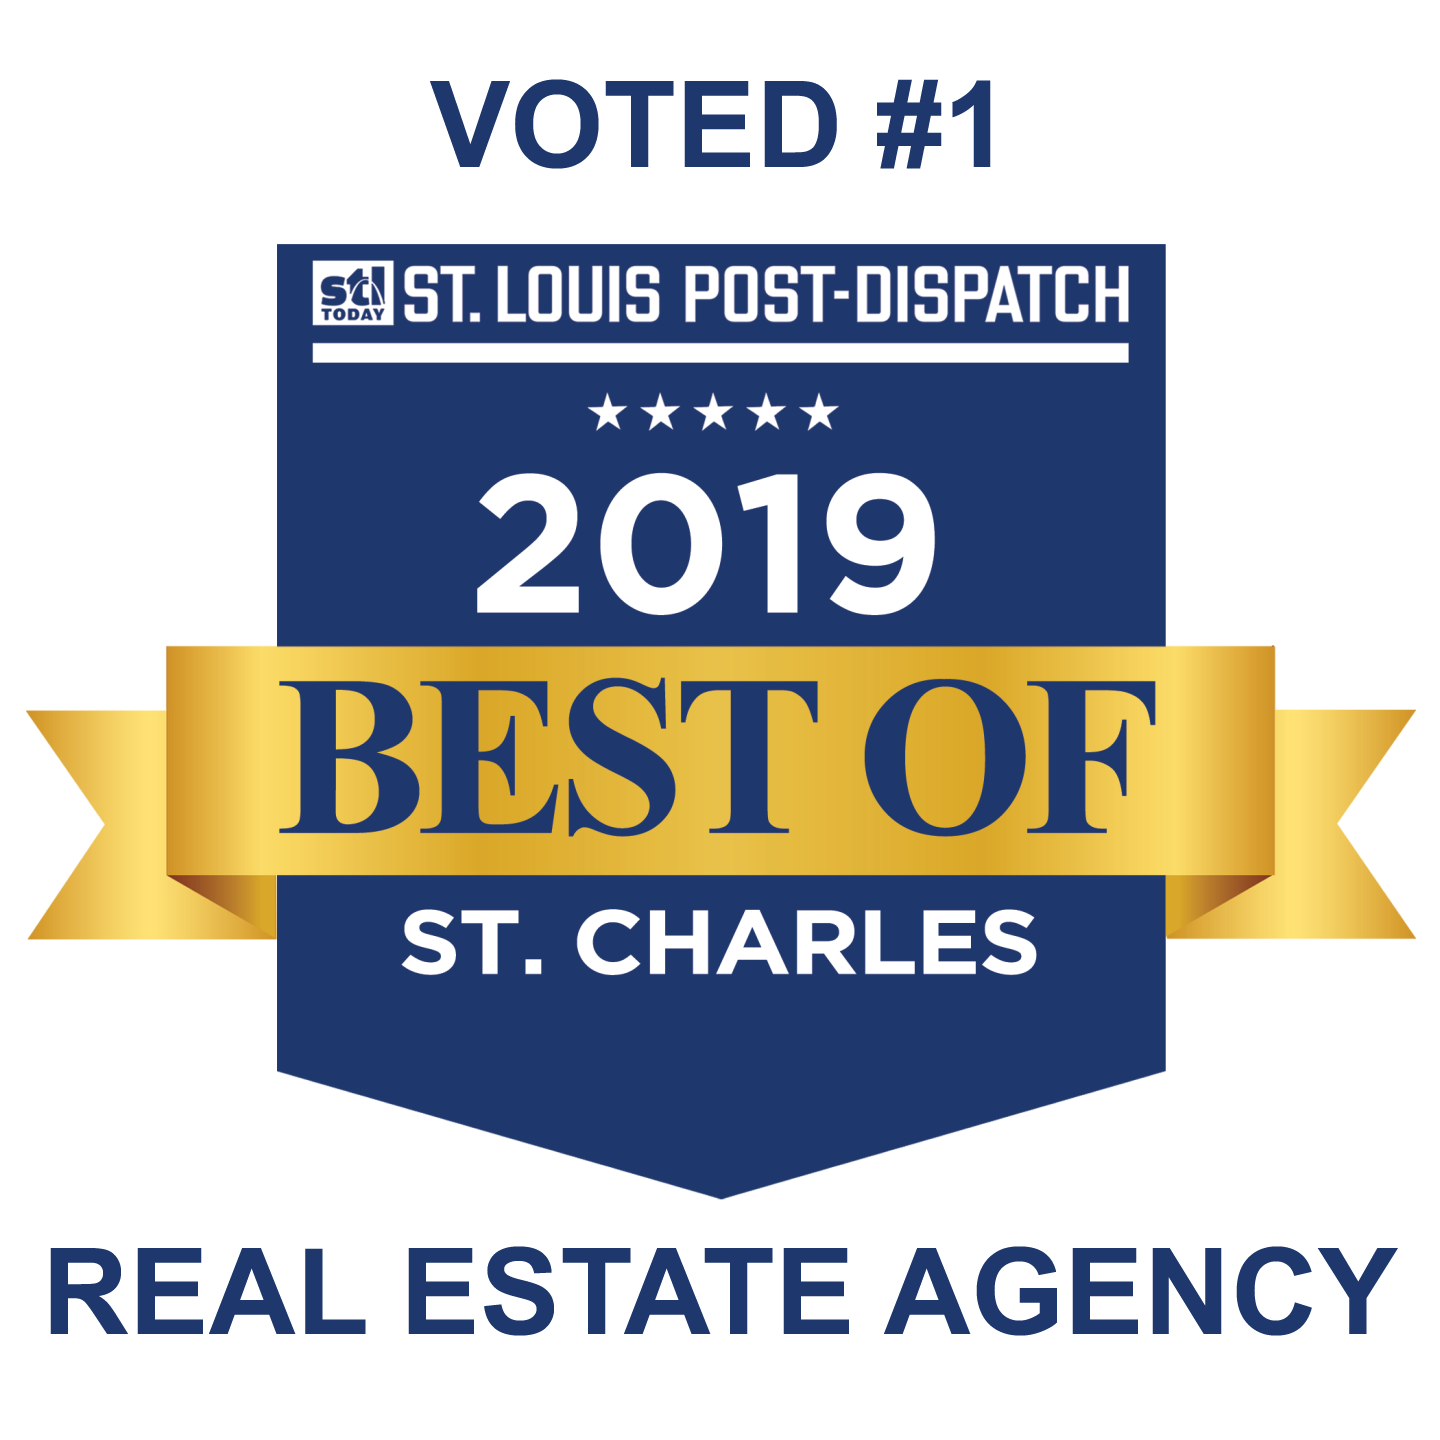 Best of St. Charles 2019 - M2ForSale Realty Group